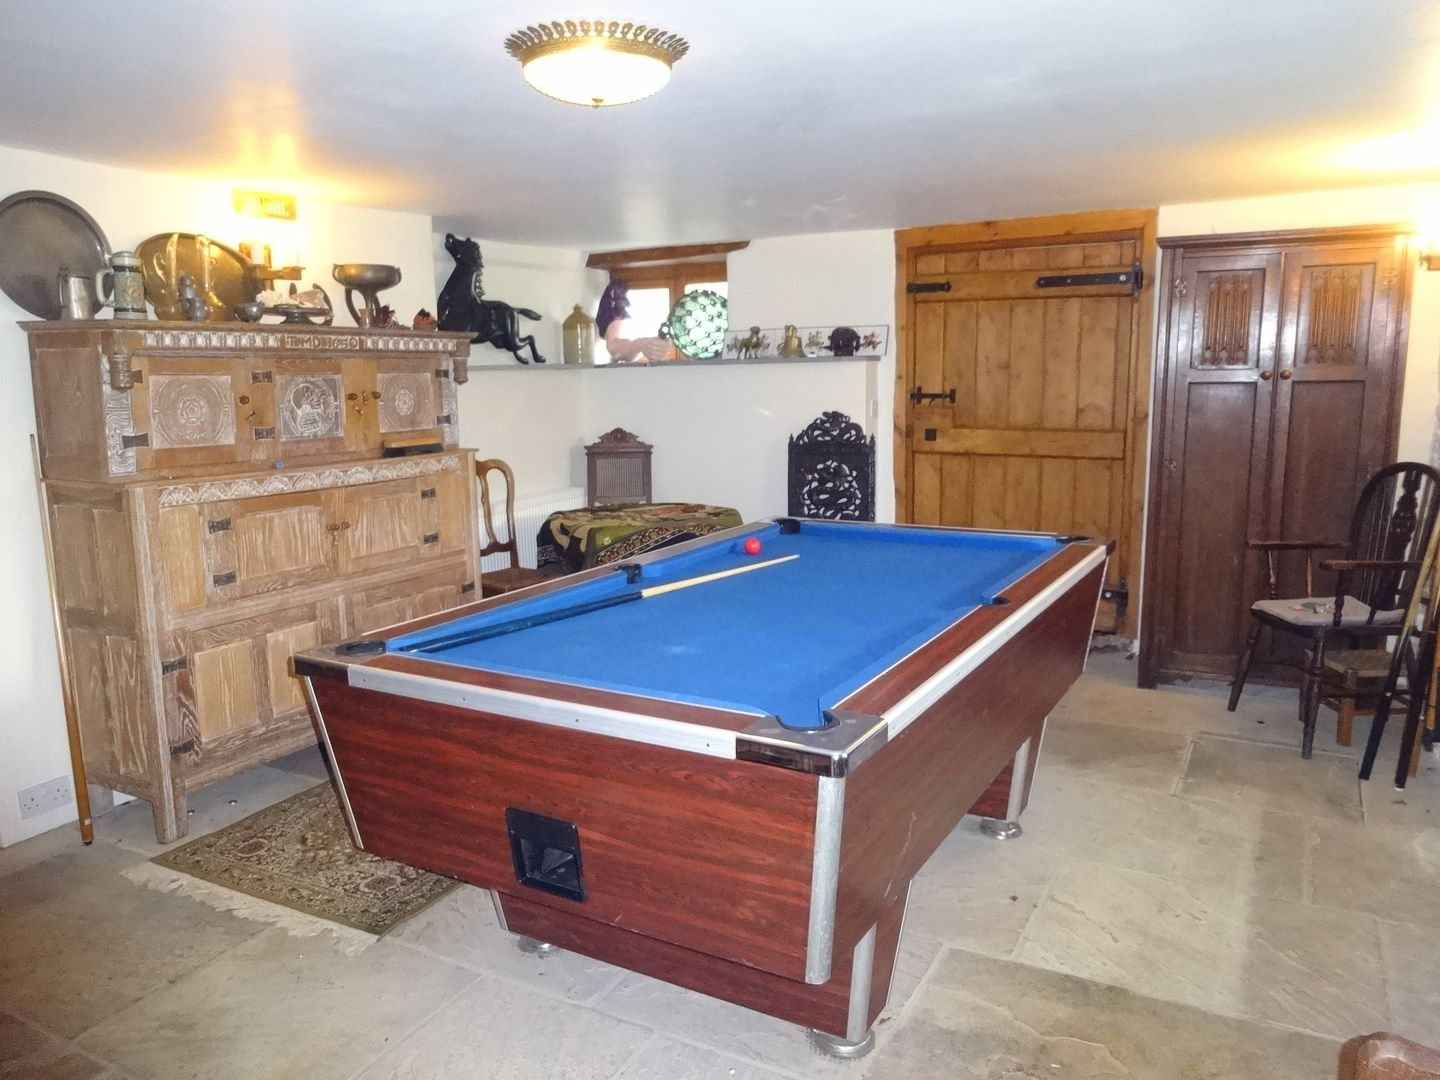 Beechlands Chagford Pool Room